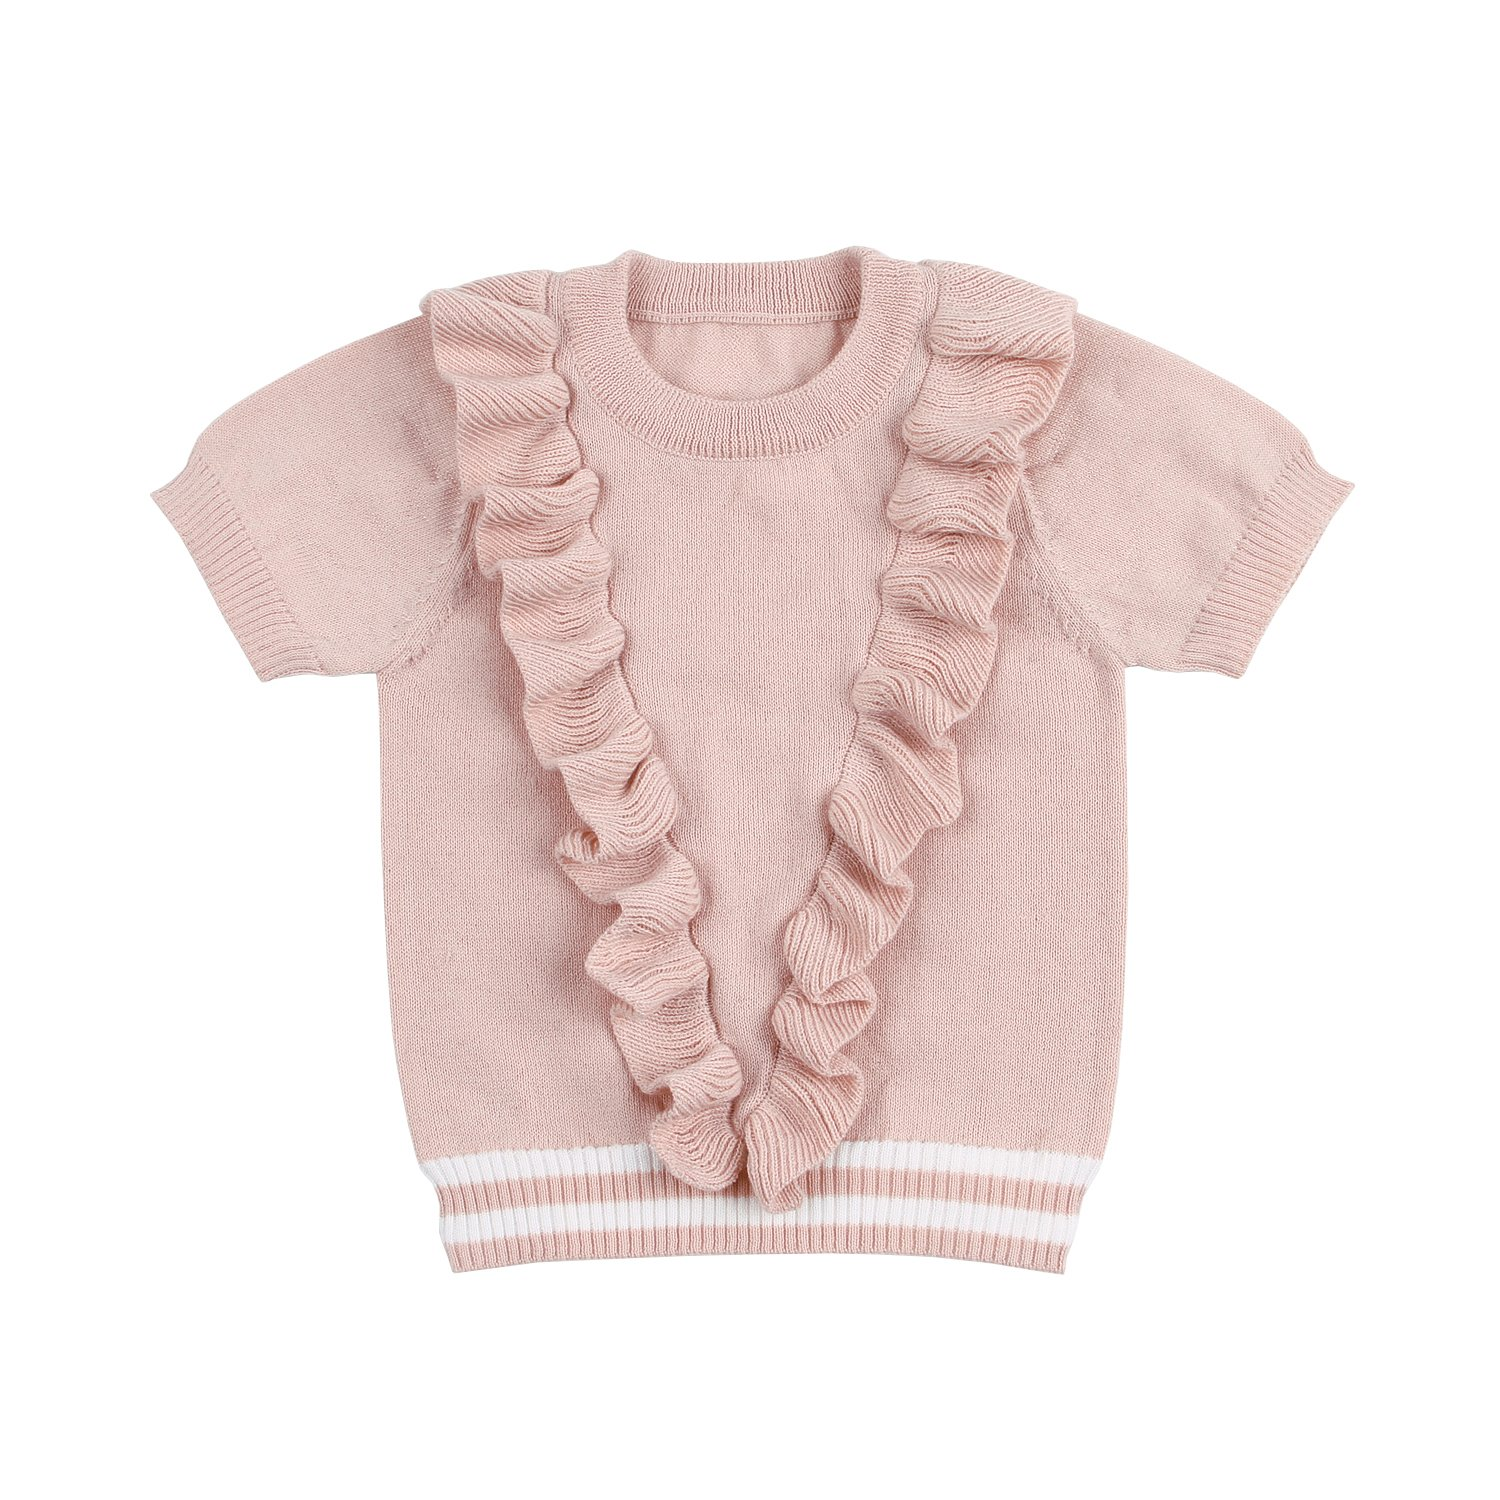 mimixiong Baby Girl Sweatshirt Long Sleeve Pullover Knitwear Clothes